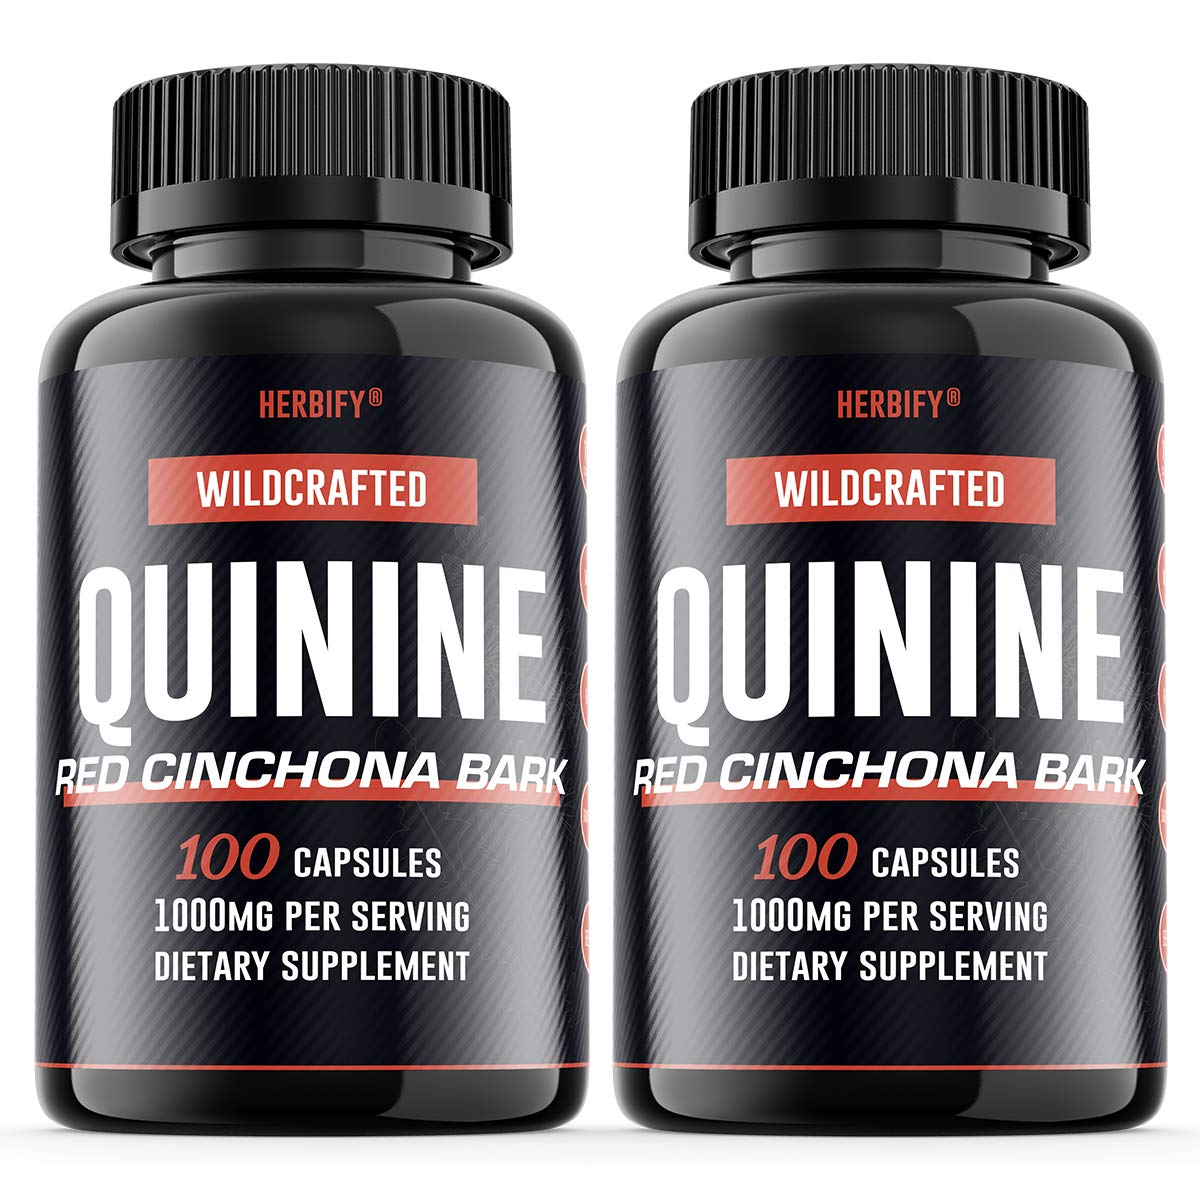 Quinine Pills 1000mg, Red Cinchona Bark Cinchona succirubra Peruvian Bark Cinchona officinalis Powerful Combination, Wild Harvested Herbal Supplement, 100 Capsules 200